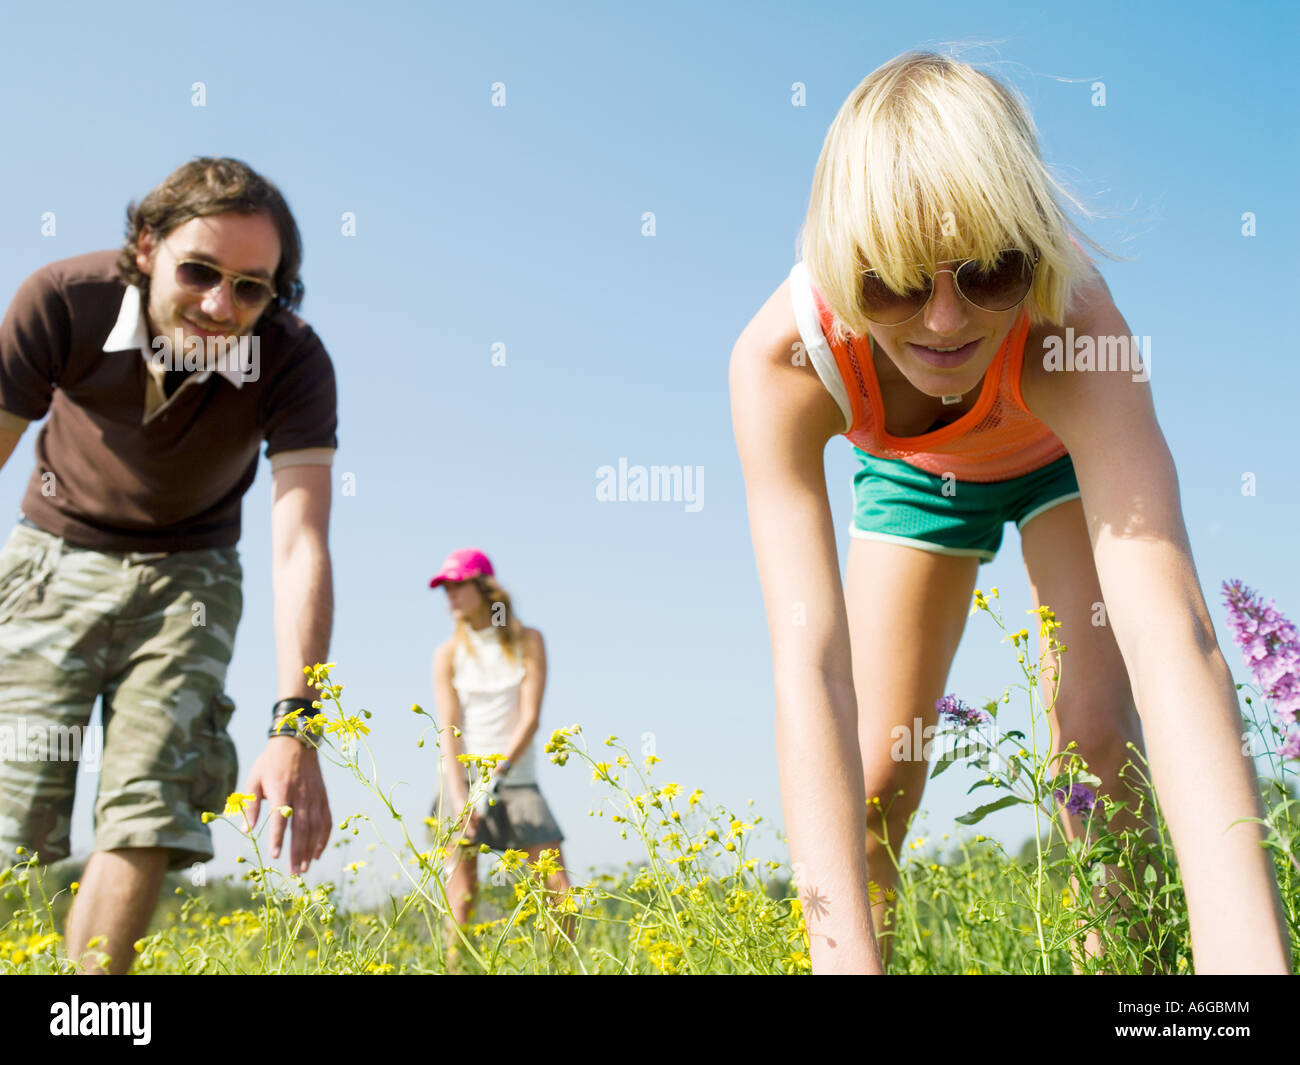 Lost Golf Ball Stock Photos & Lost Golf Ball Stock Images